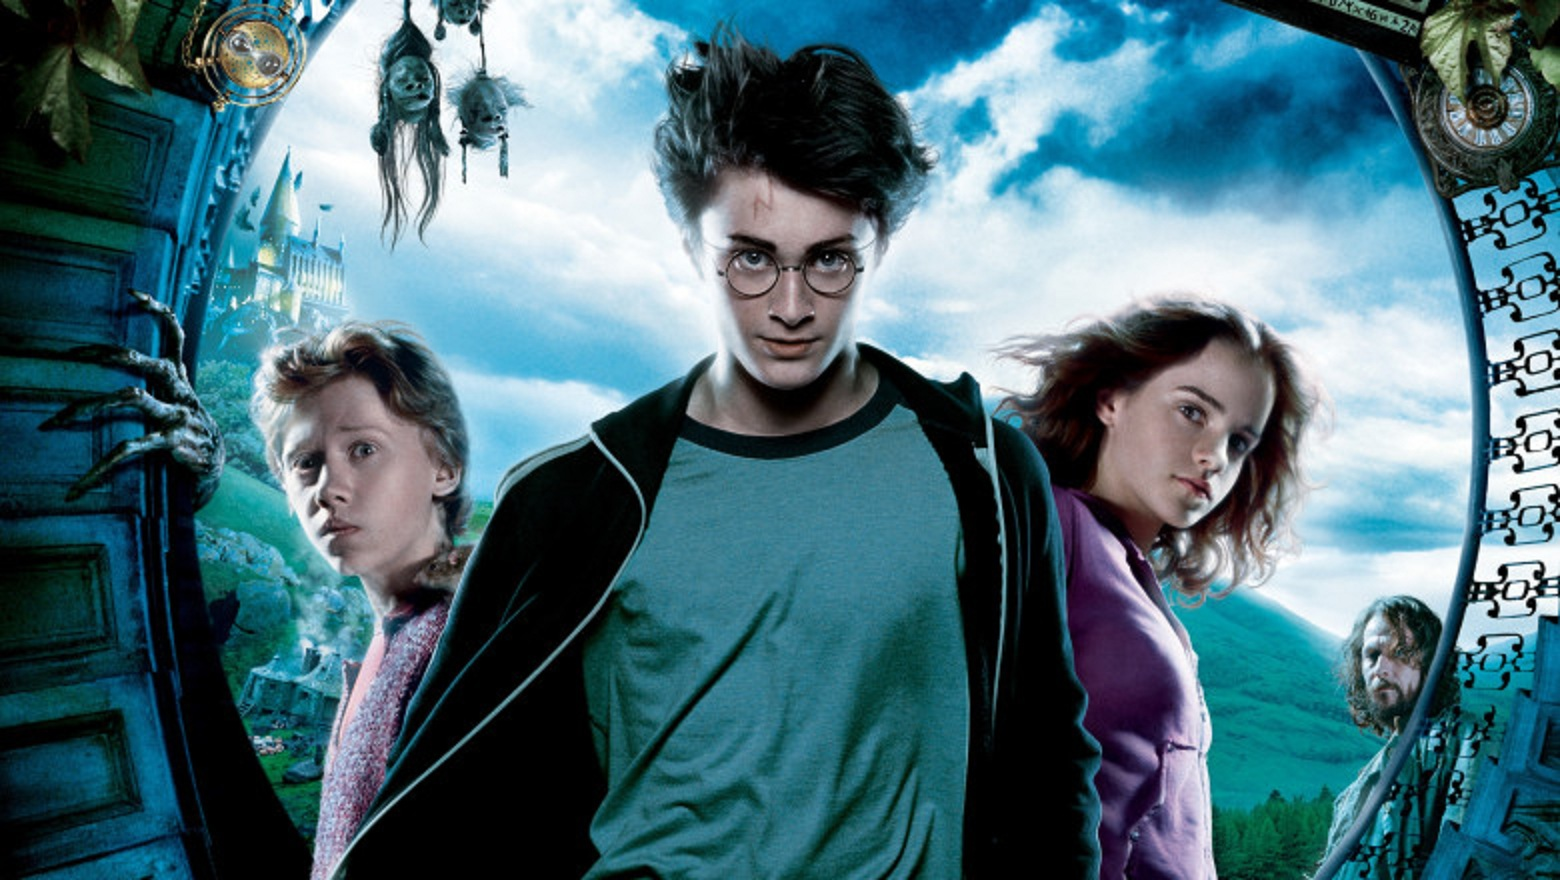 Digi Online va furniza clientilor sai, gratuit, seria Harry Potter